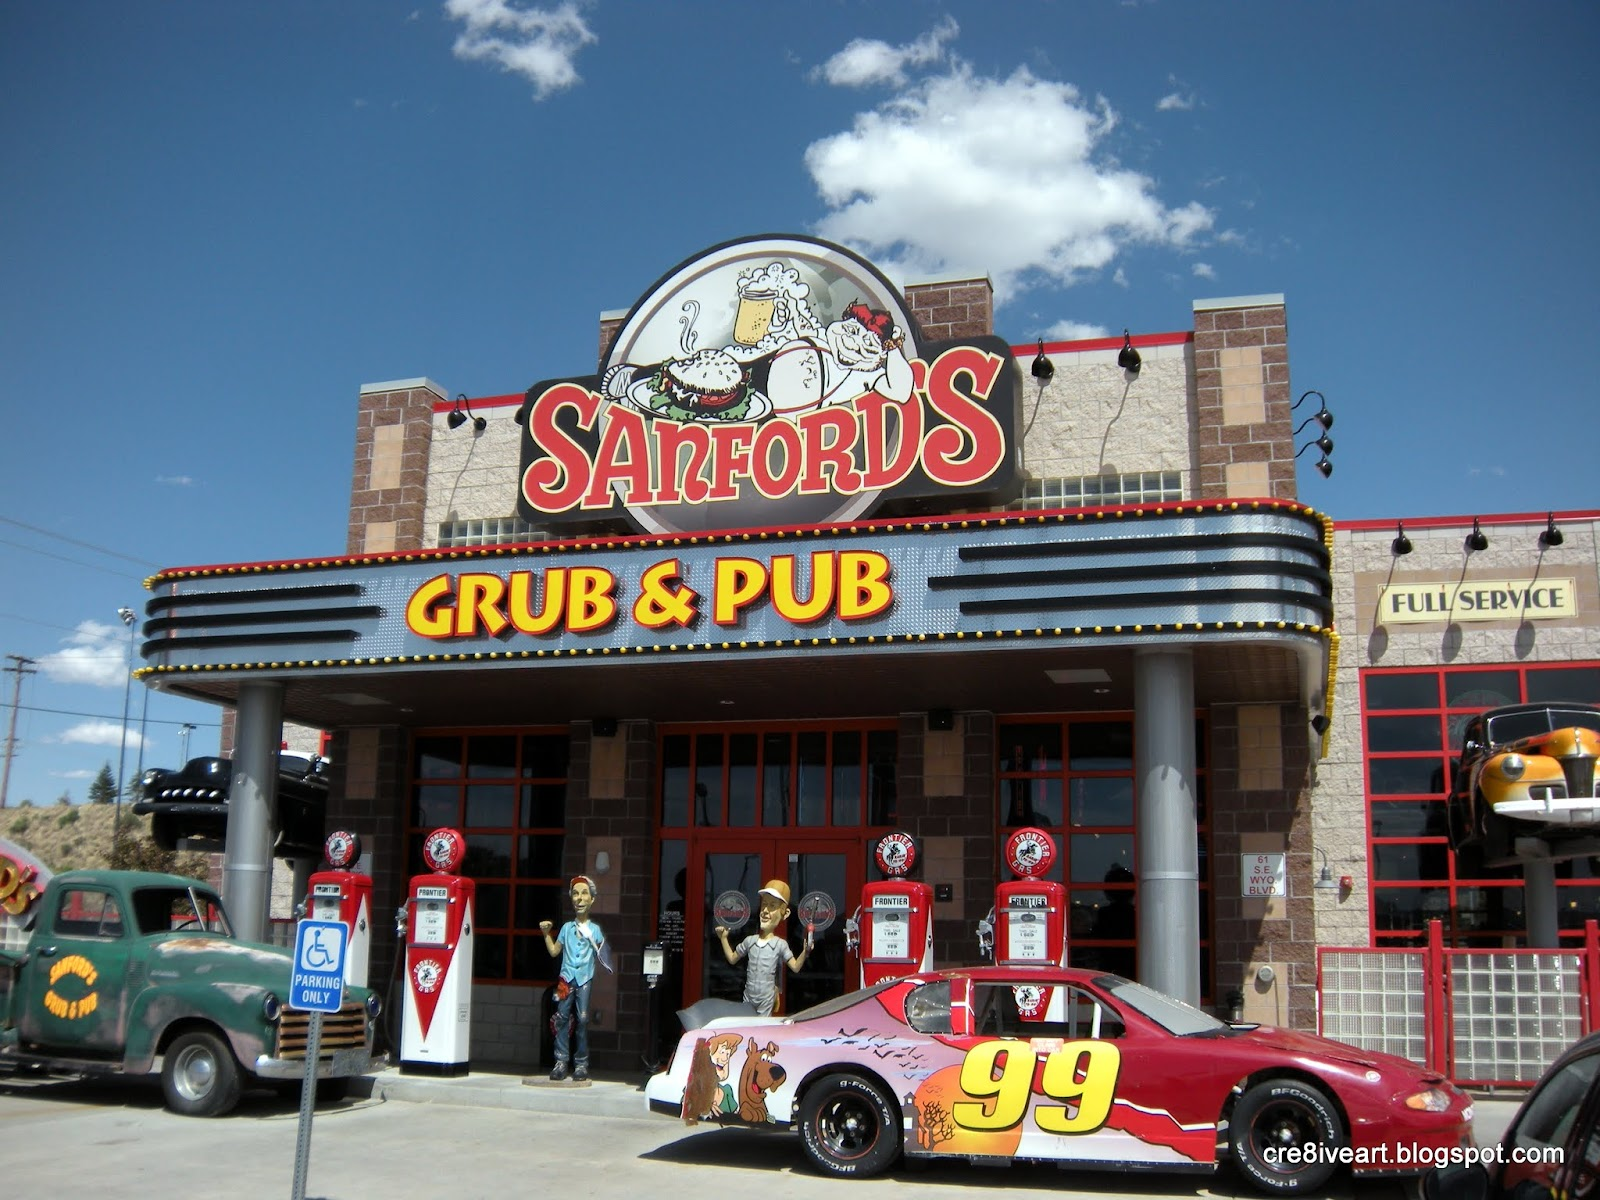 Cre8iveart 2012 06 15 sanford 39 s grub and pub casper wy for Best places to eat in jackson wy